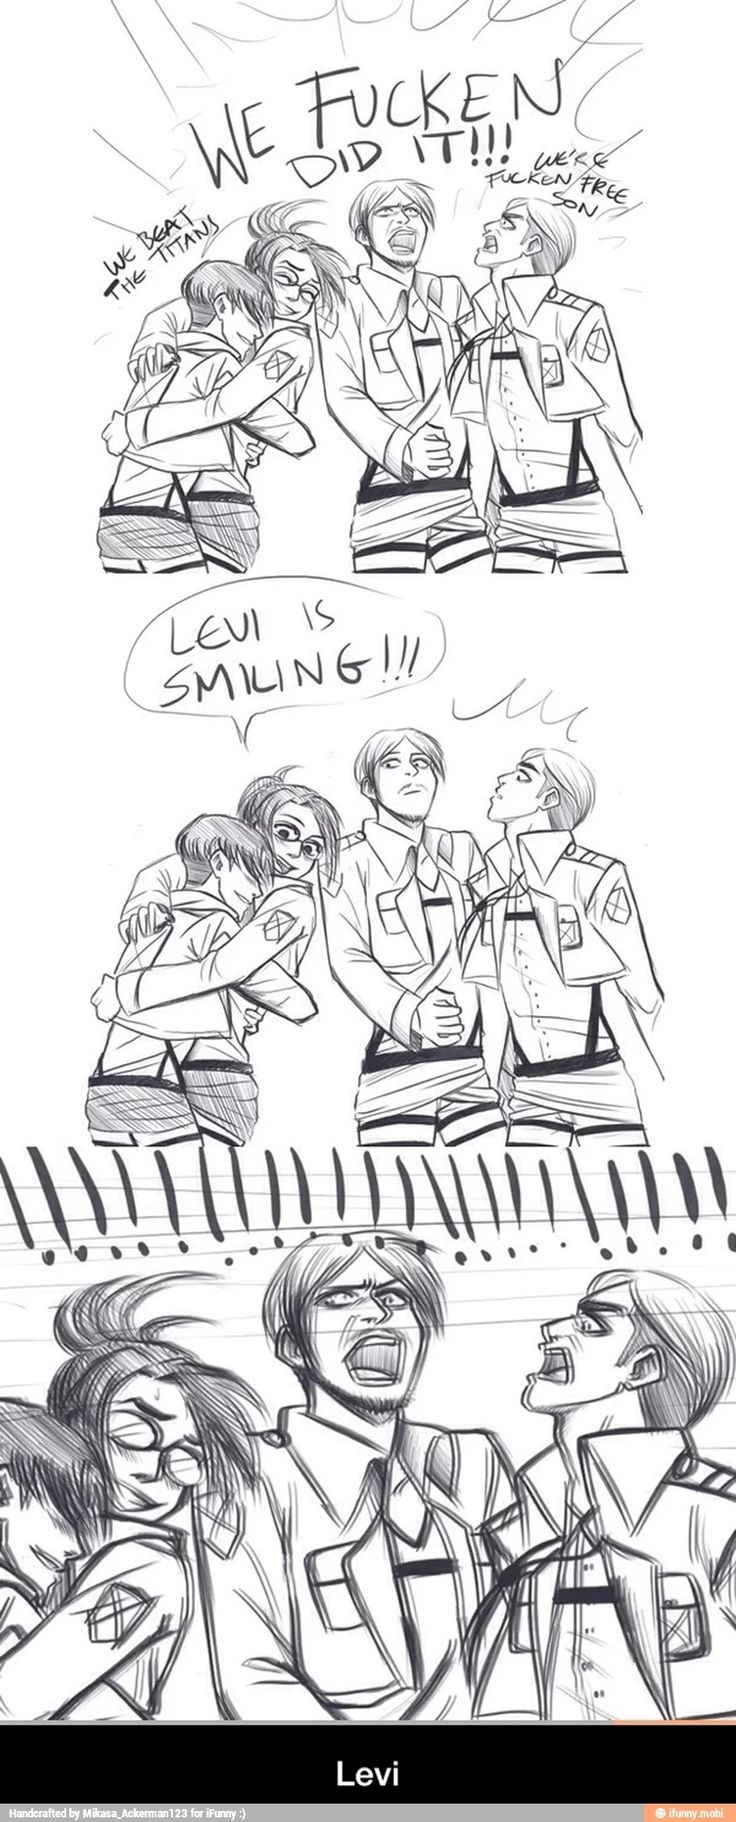 Levi smiling is more exciting than exterminating the Titans.